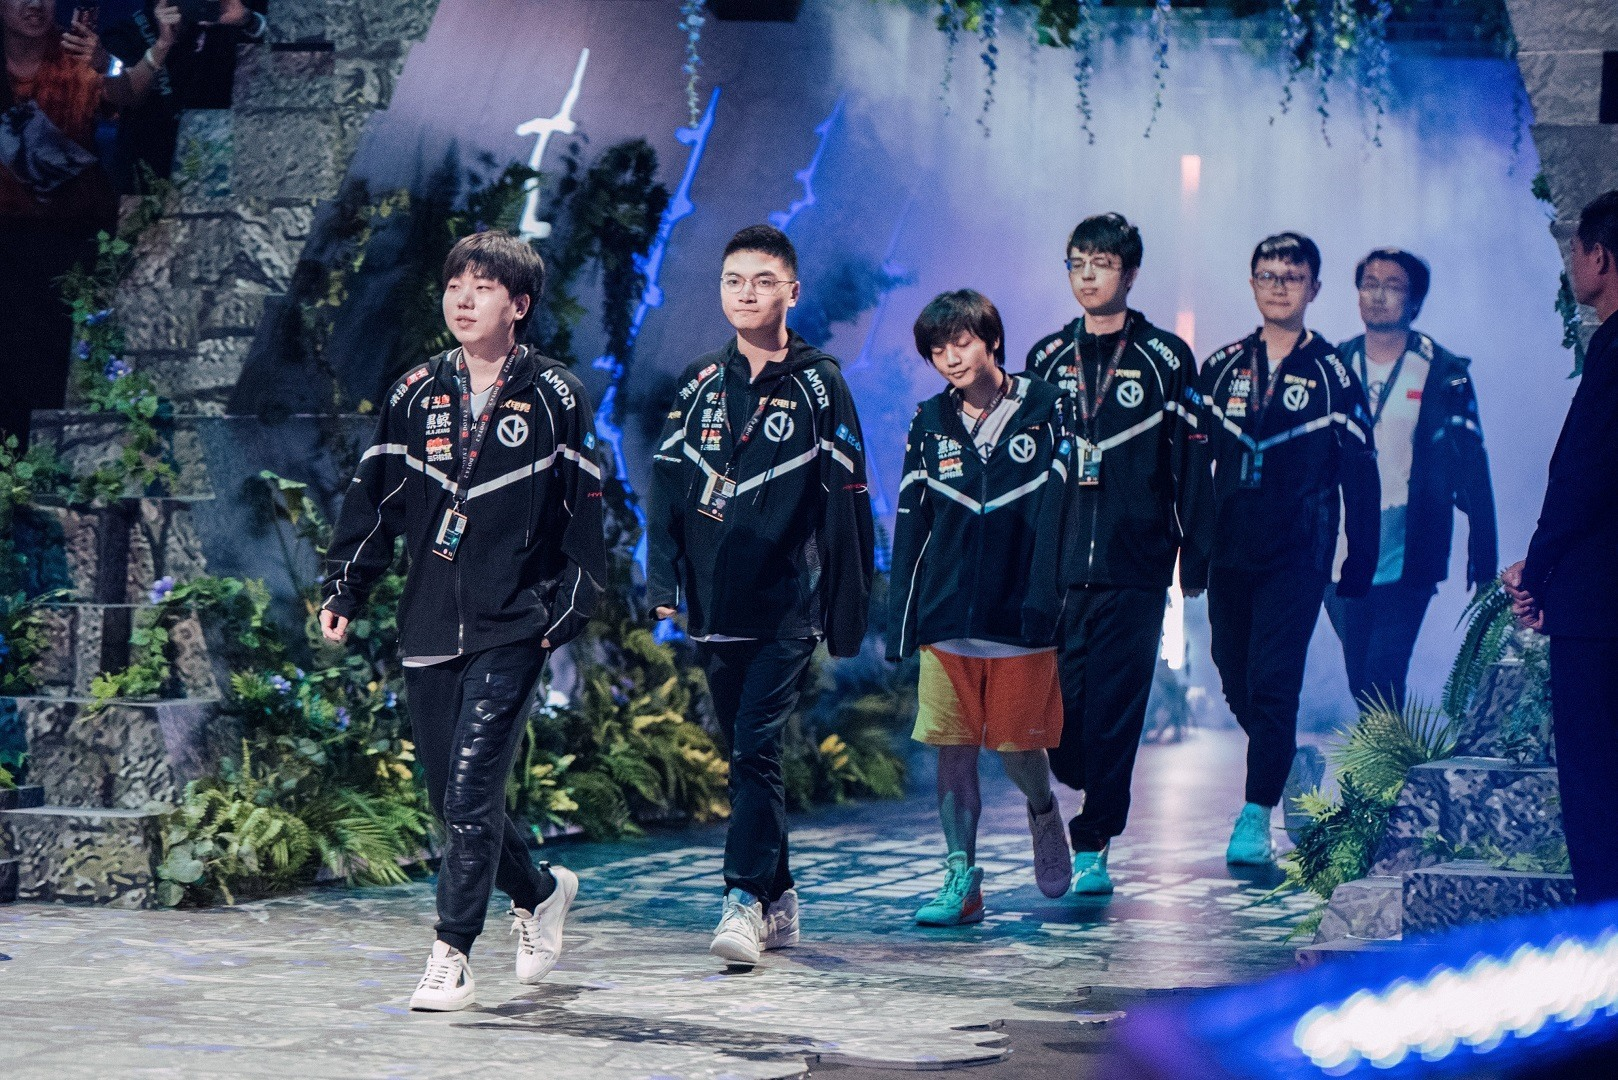 TI9 Day 5 Fantasy Roster The International 2019